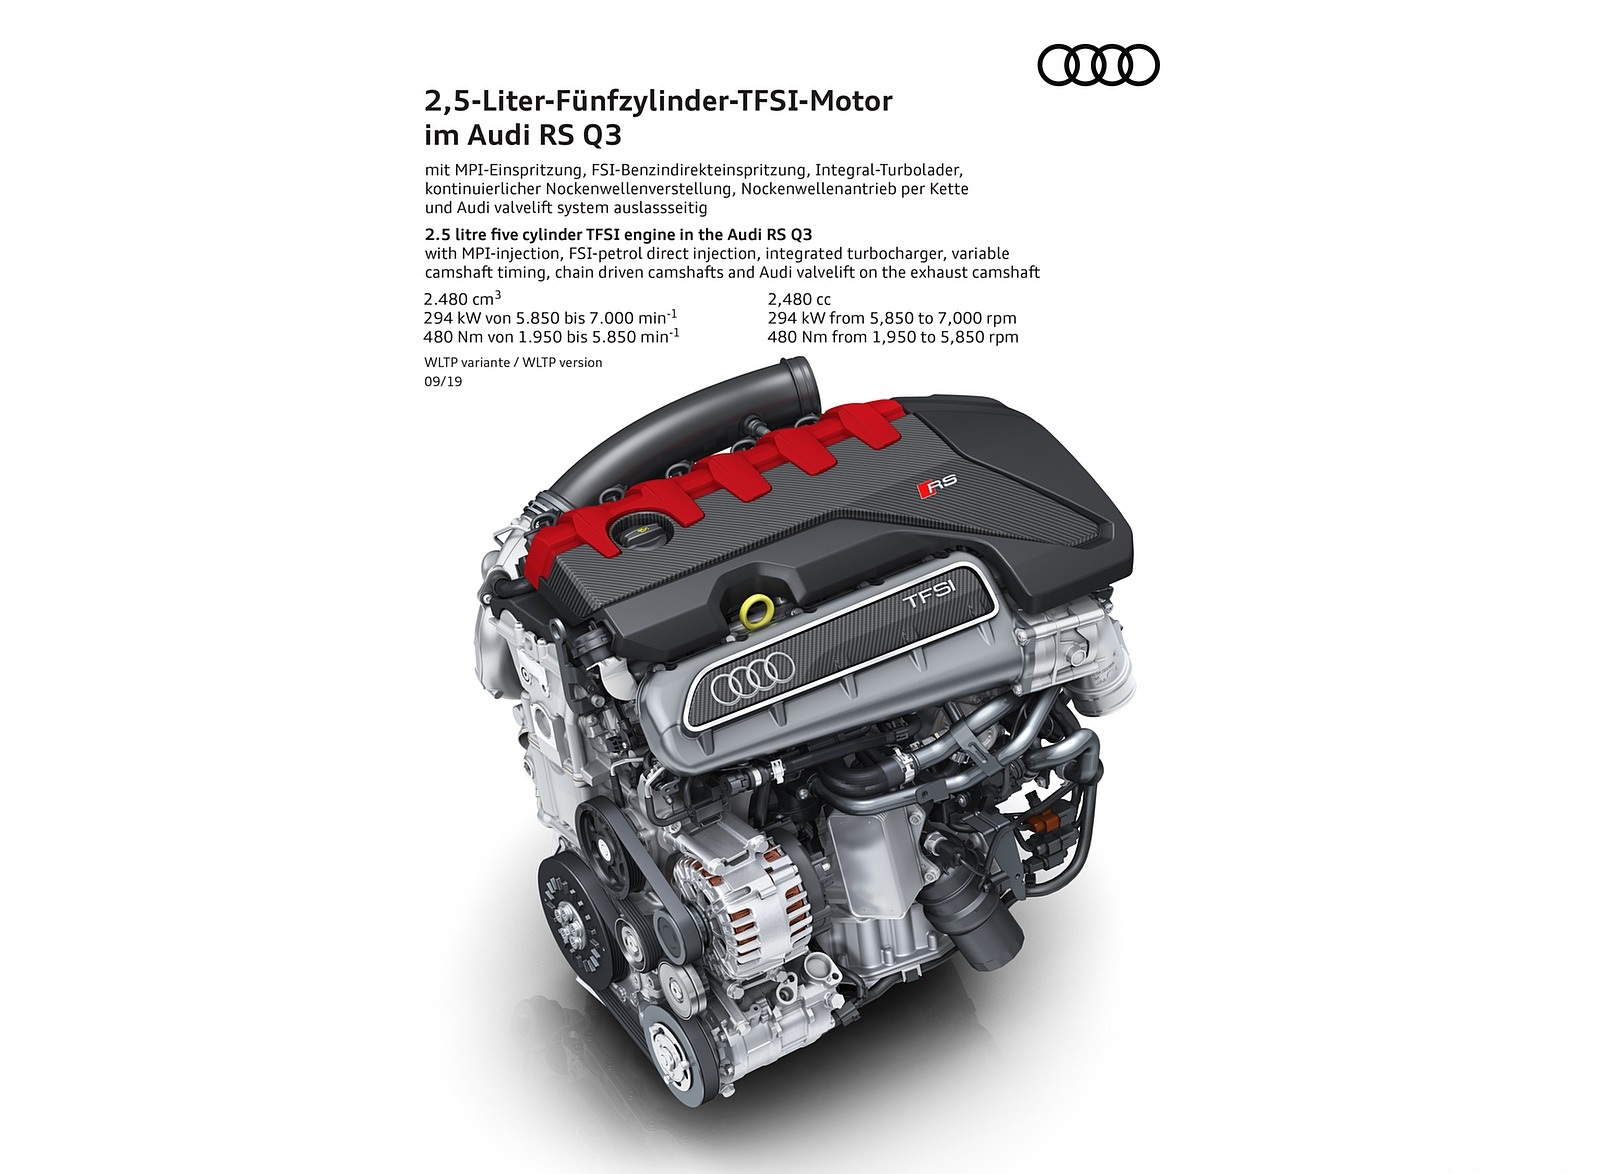 2020 Audi Rs Q3 2 5 Litre Five Cylinder Tfsi Engine In The Audi Rs Q3 Wallpapers 114 Newcarcars